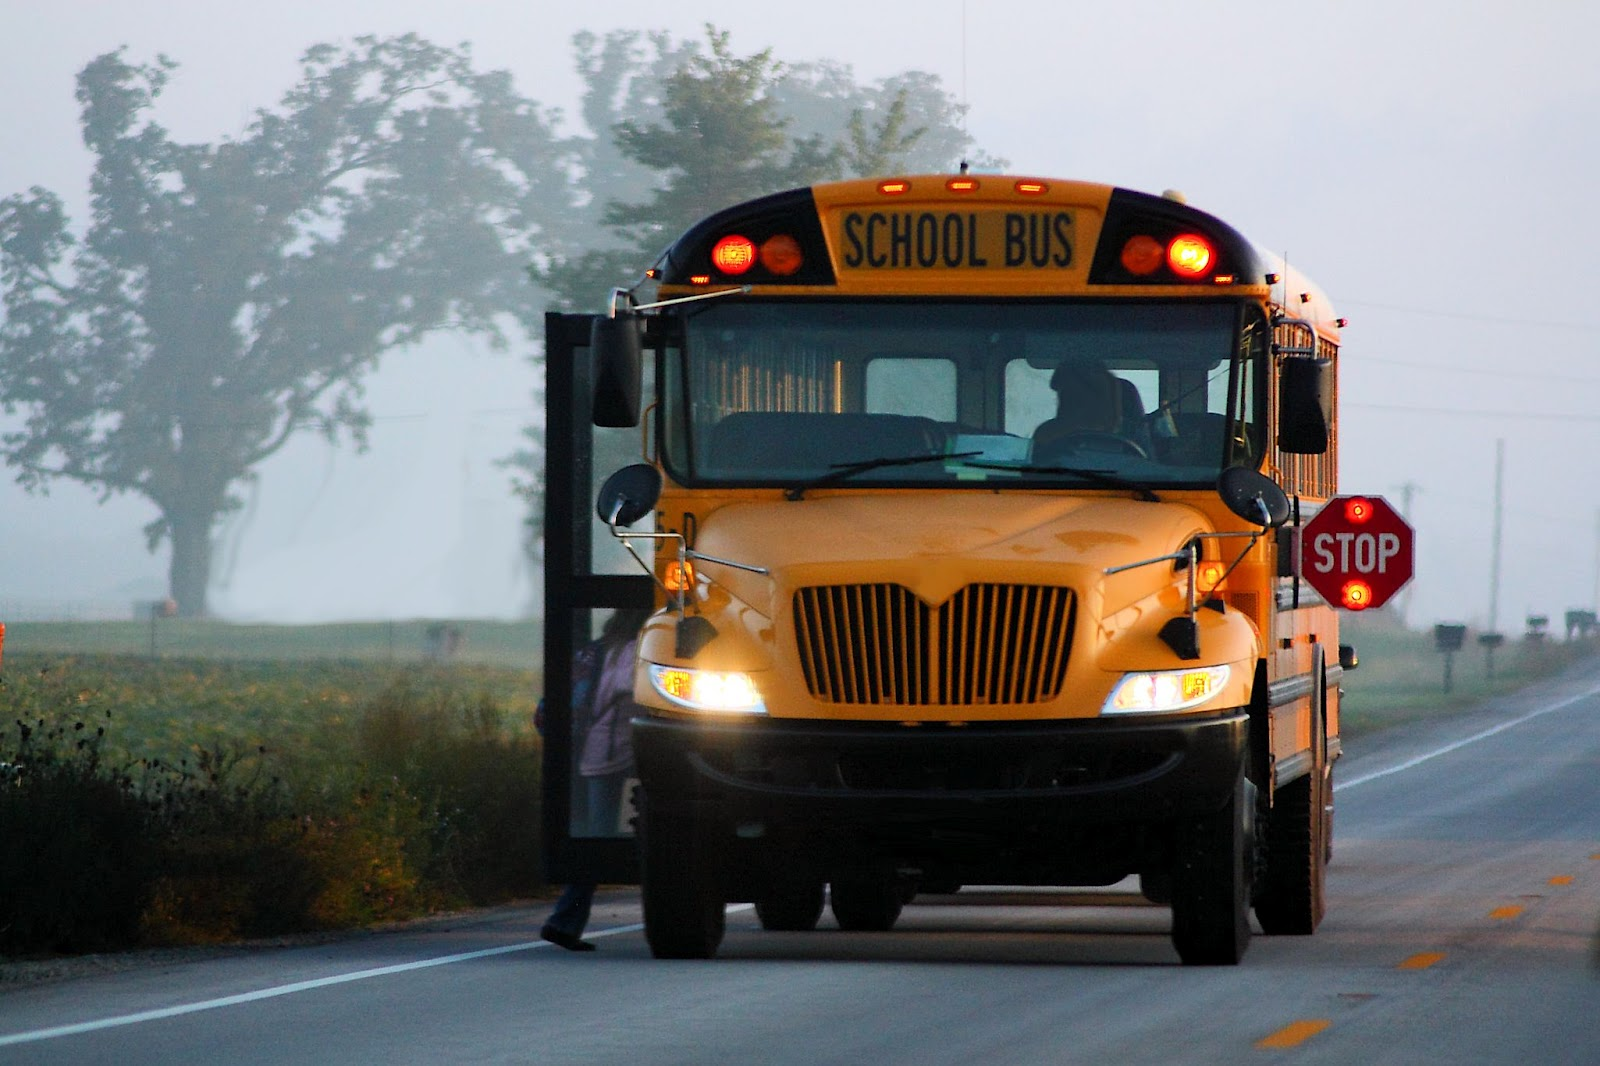 Wallpapers and pictures School bus in the morning hd 1600x1066